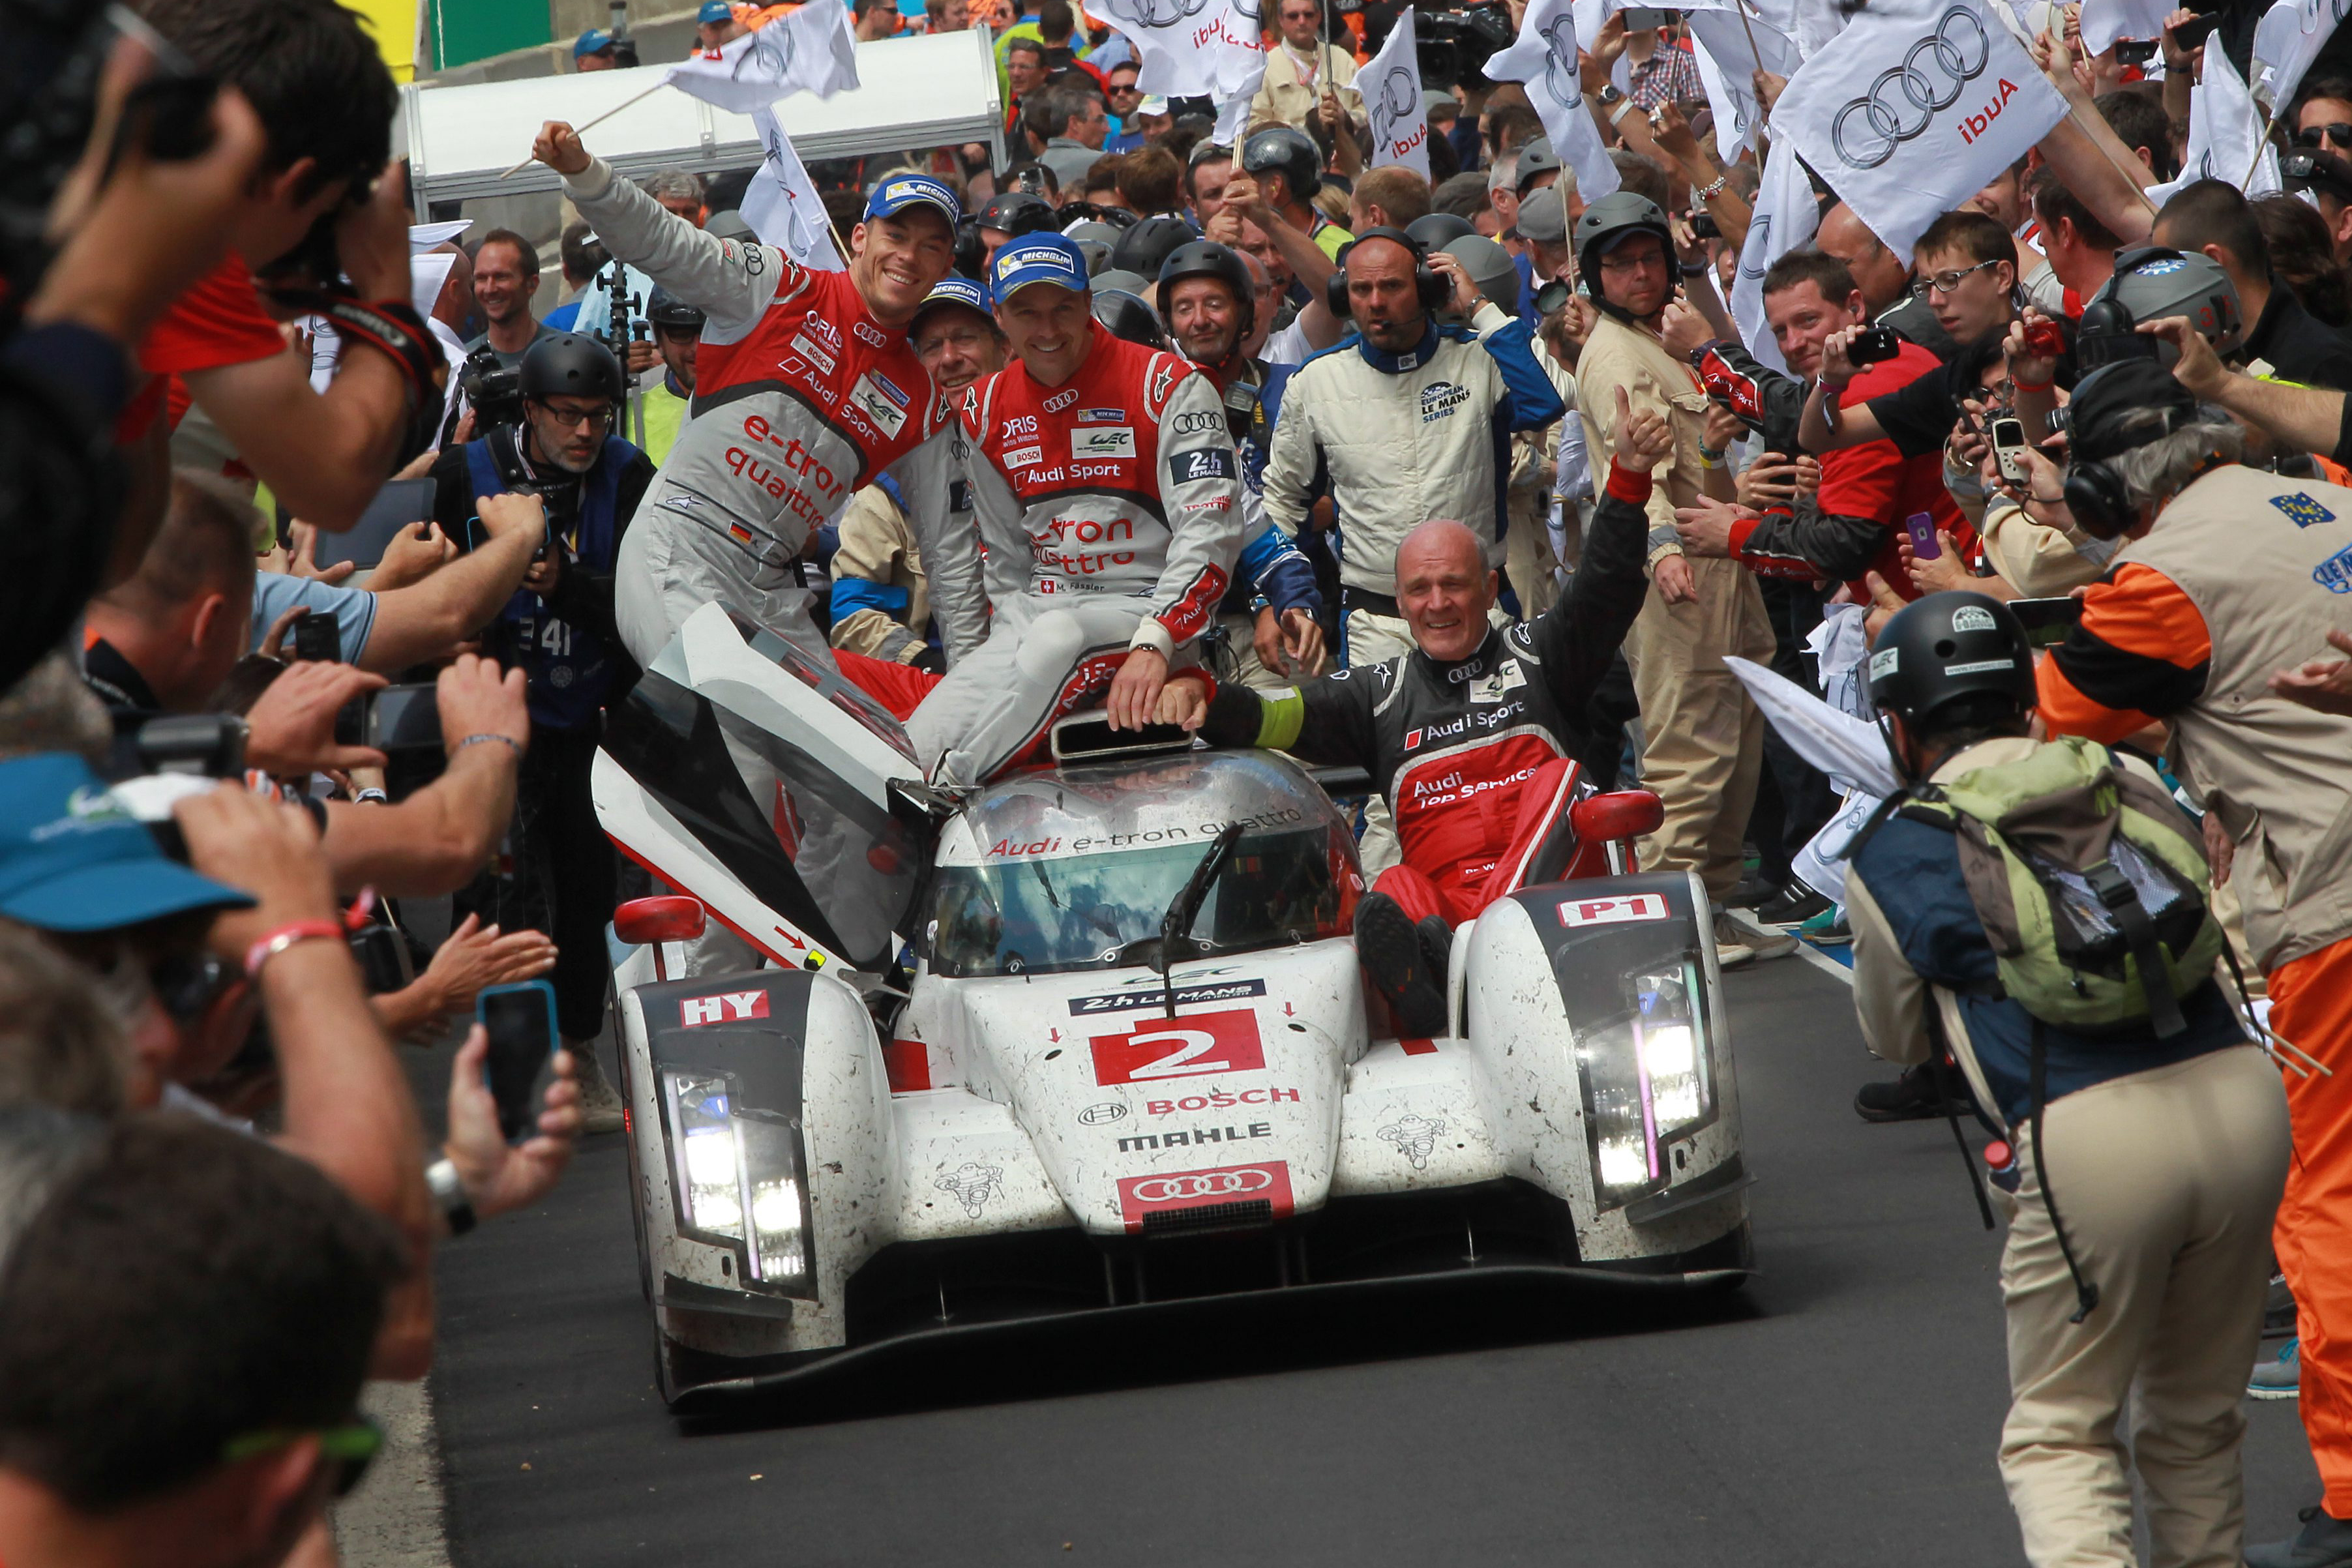 Le Mans 2014 Audi 1 2 Marks 13th Win For Ingolstadt